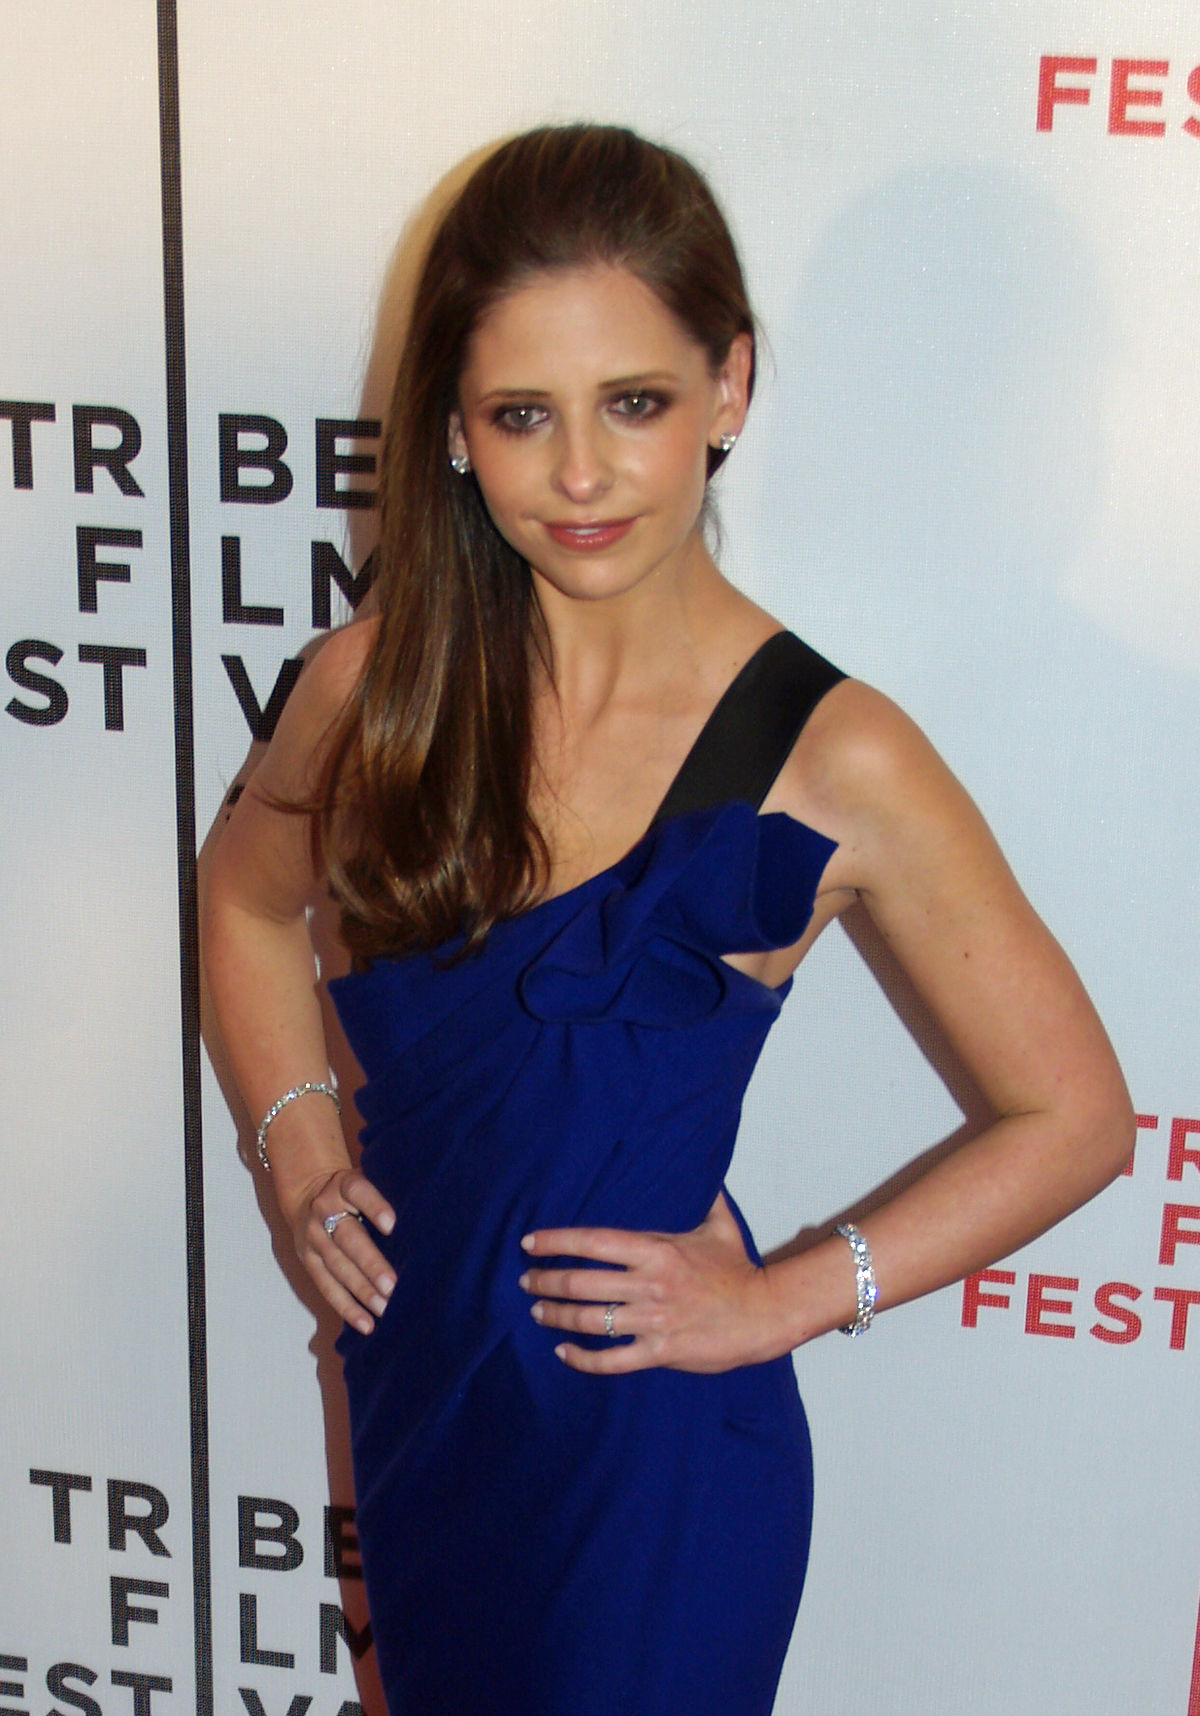 SARAH MICHELLE GELLAR NUDE PHOTOS COLLECTION | The Fappening